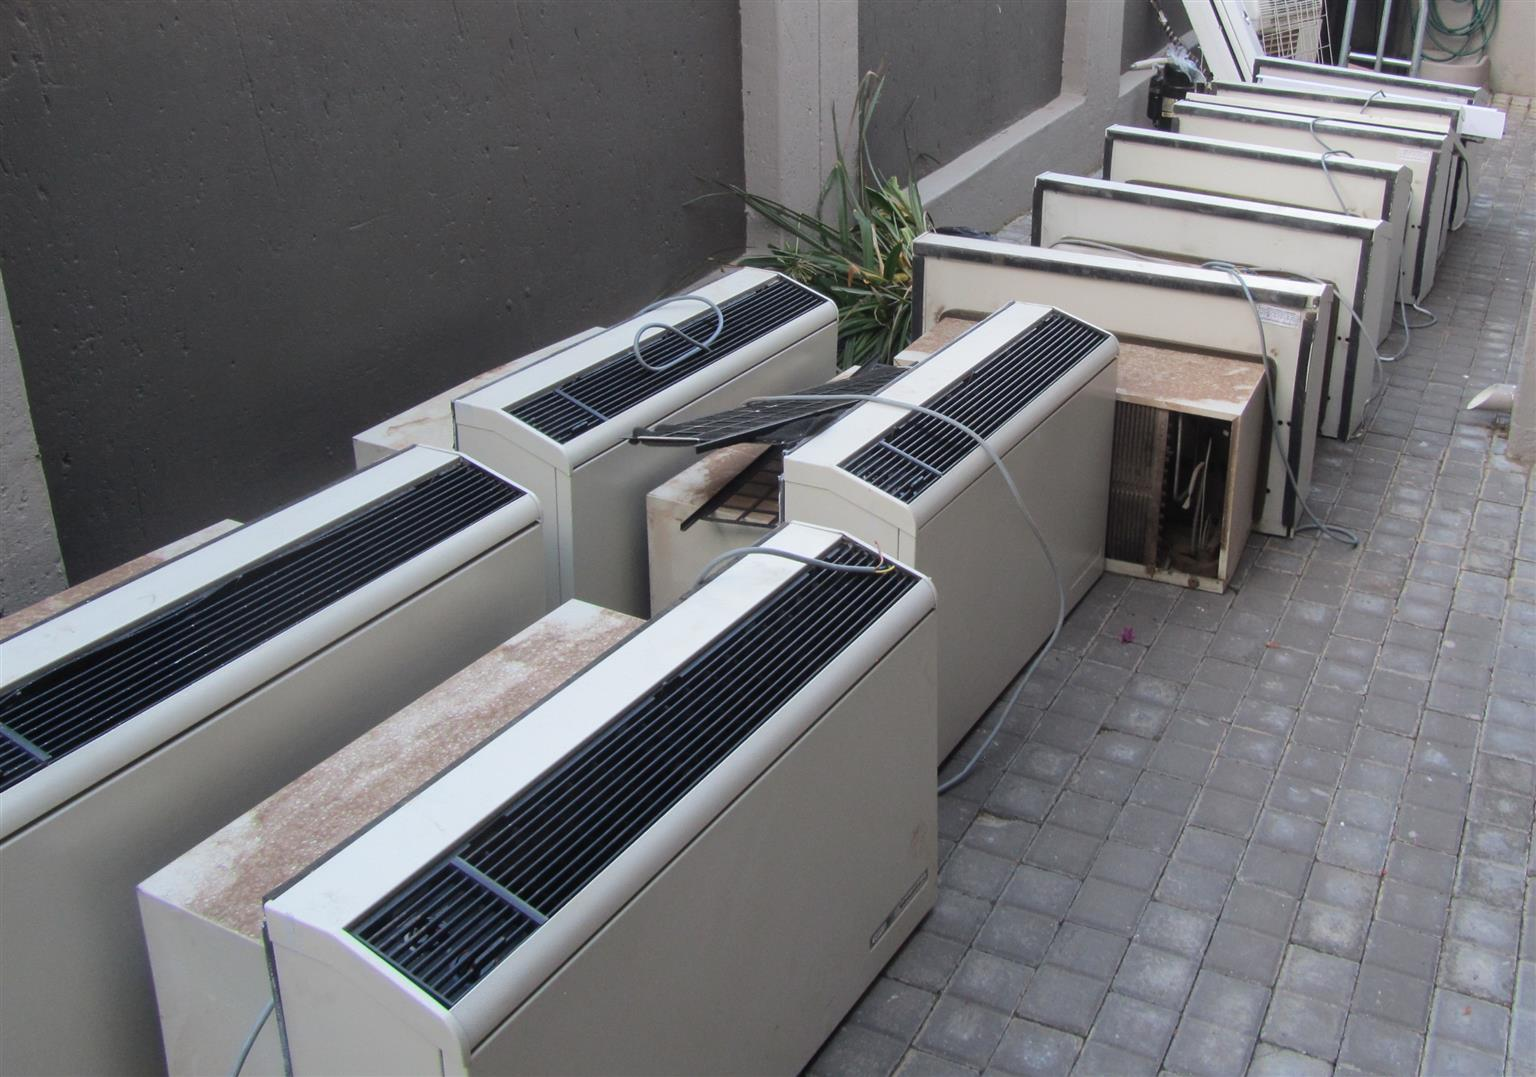 AIR CONDITIONERS - REFURBISHED DEFY SILHOUETTE CONSOLE UNITS | Junk Mail